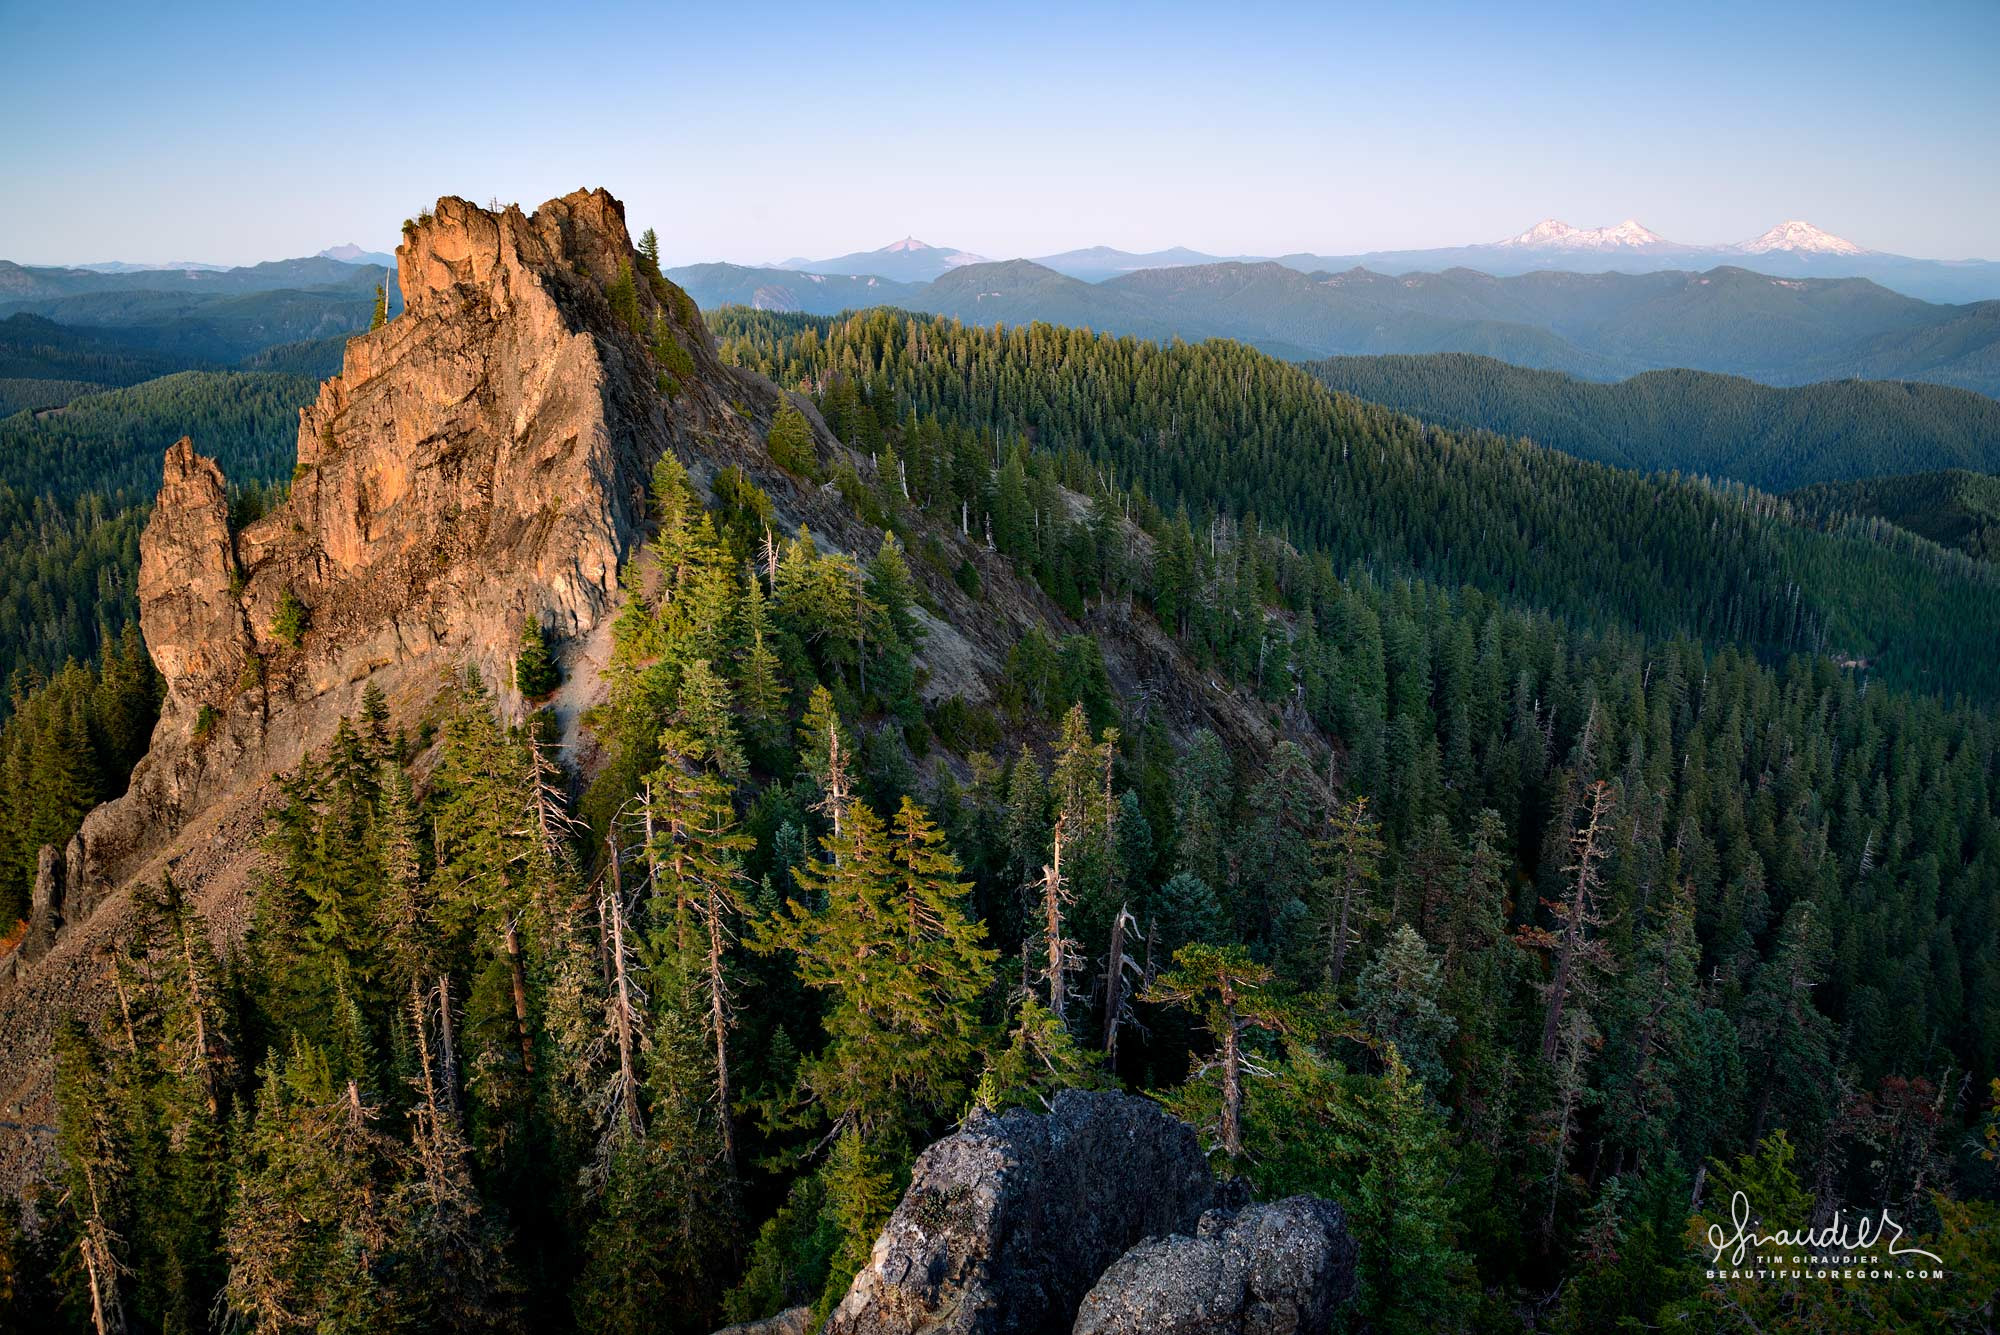 Tidbits Mountain, Willamette National Forest, Linn County, Oregon Cascades. wildflowers, hiking and outdoors recreation fun.